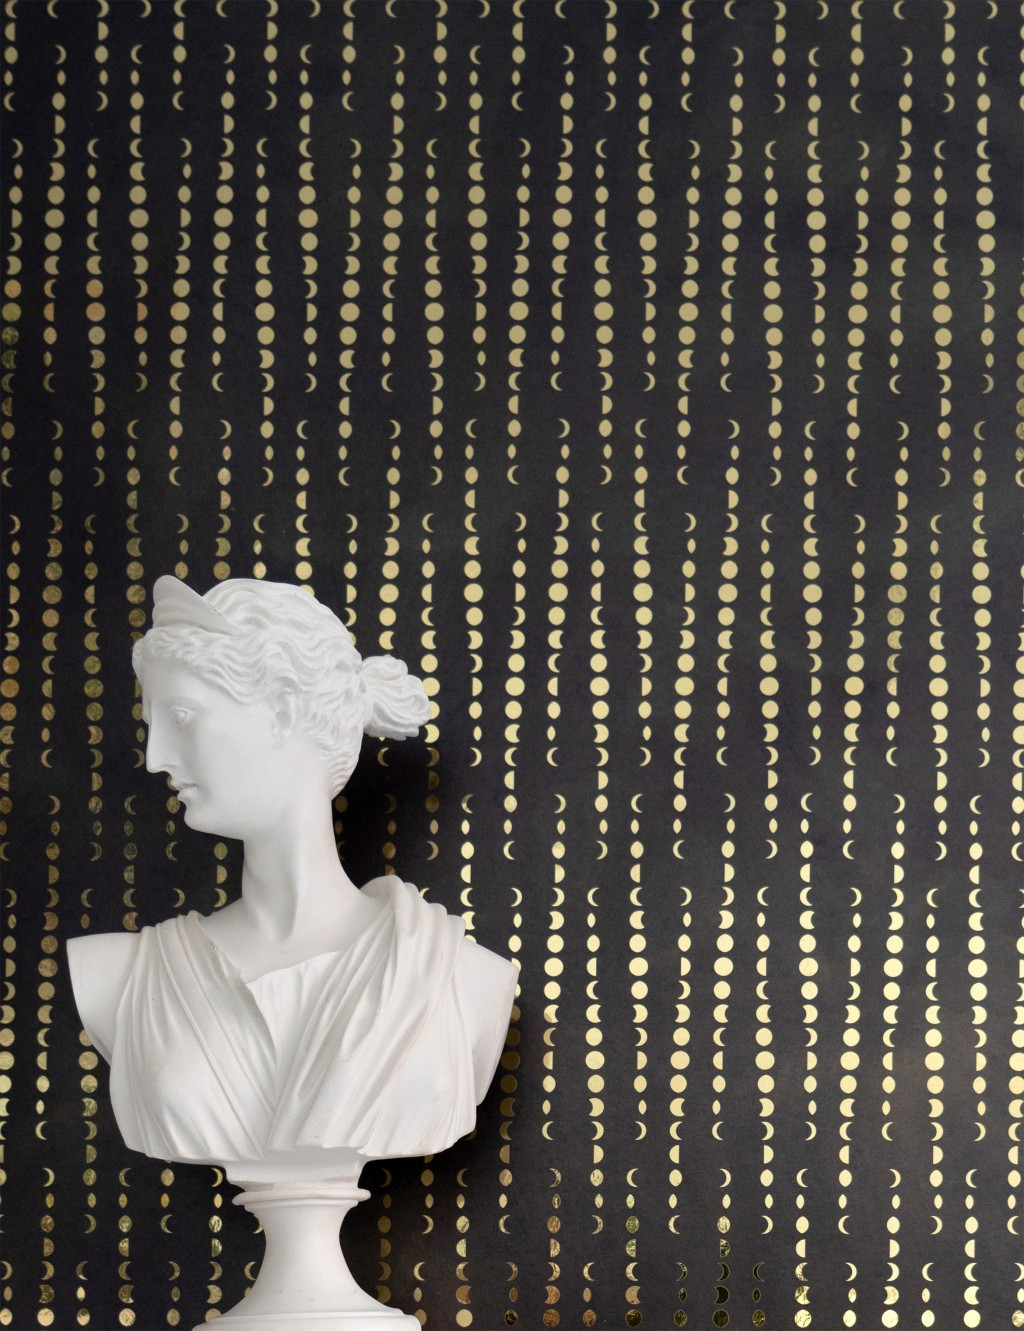 This photo provided by artist Aimee Wilder shows one of her wallpaper designs. Wilder's Eudaimonia collection was named after a Greek word meaning hap...